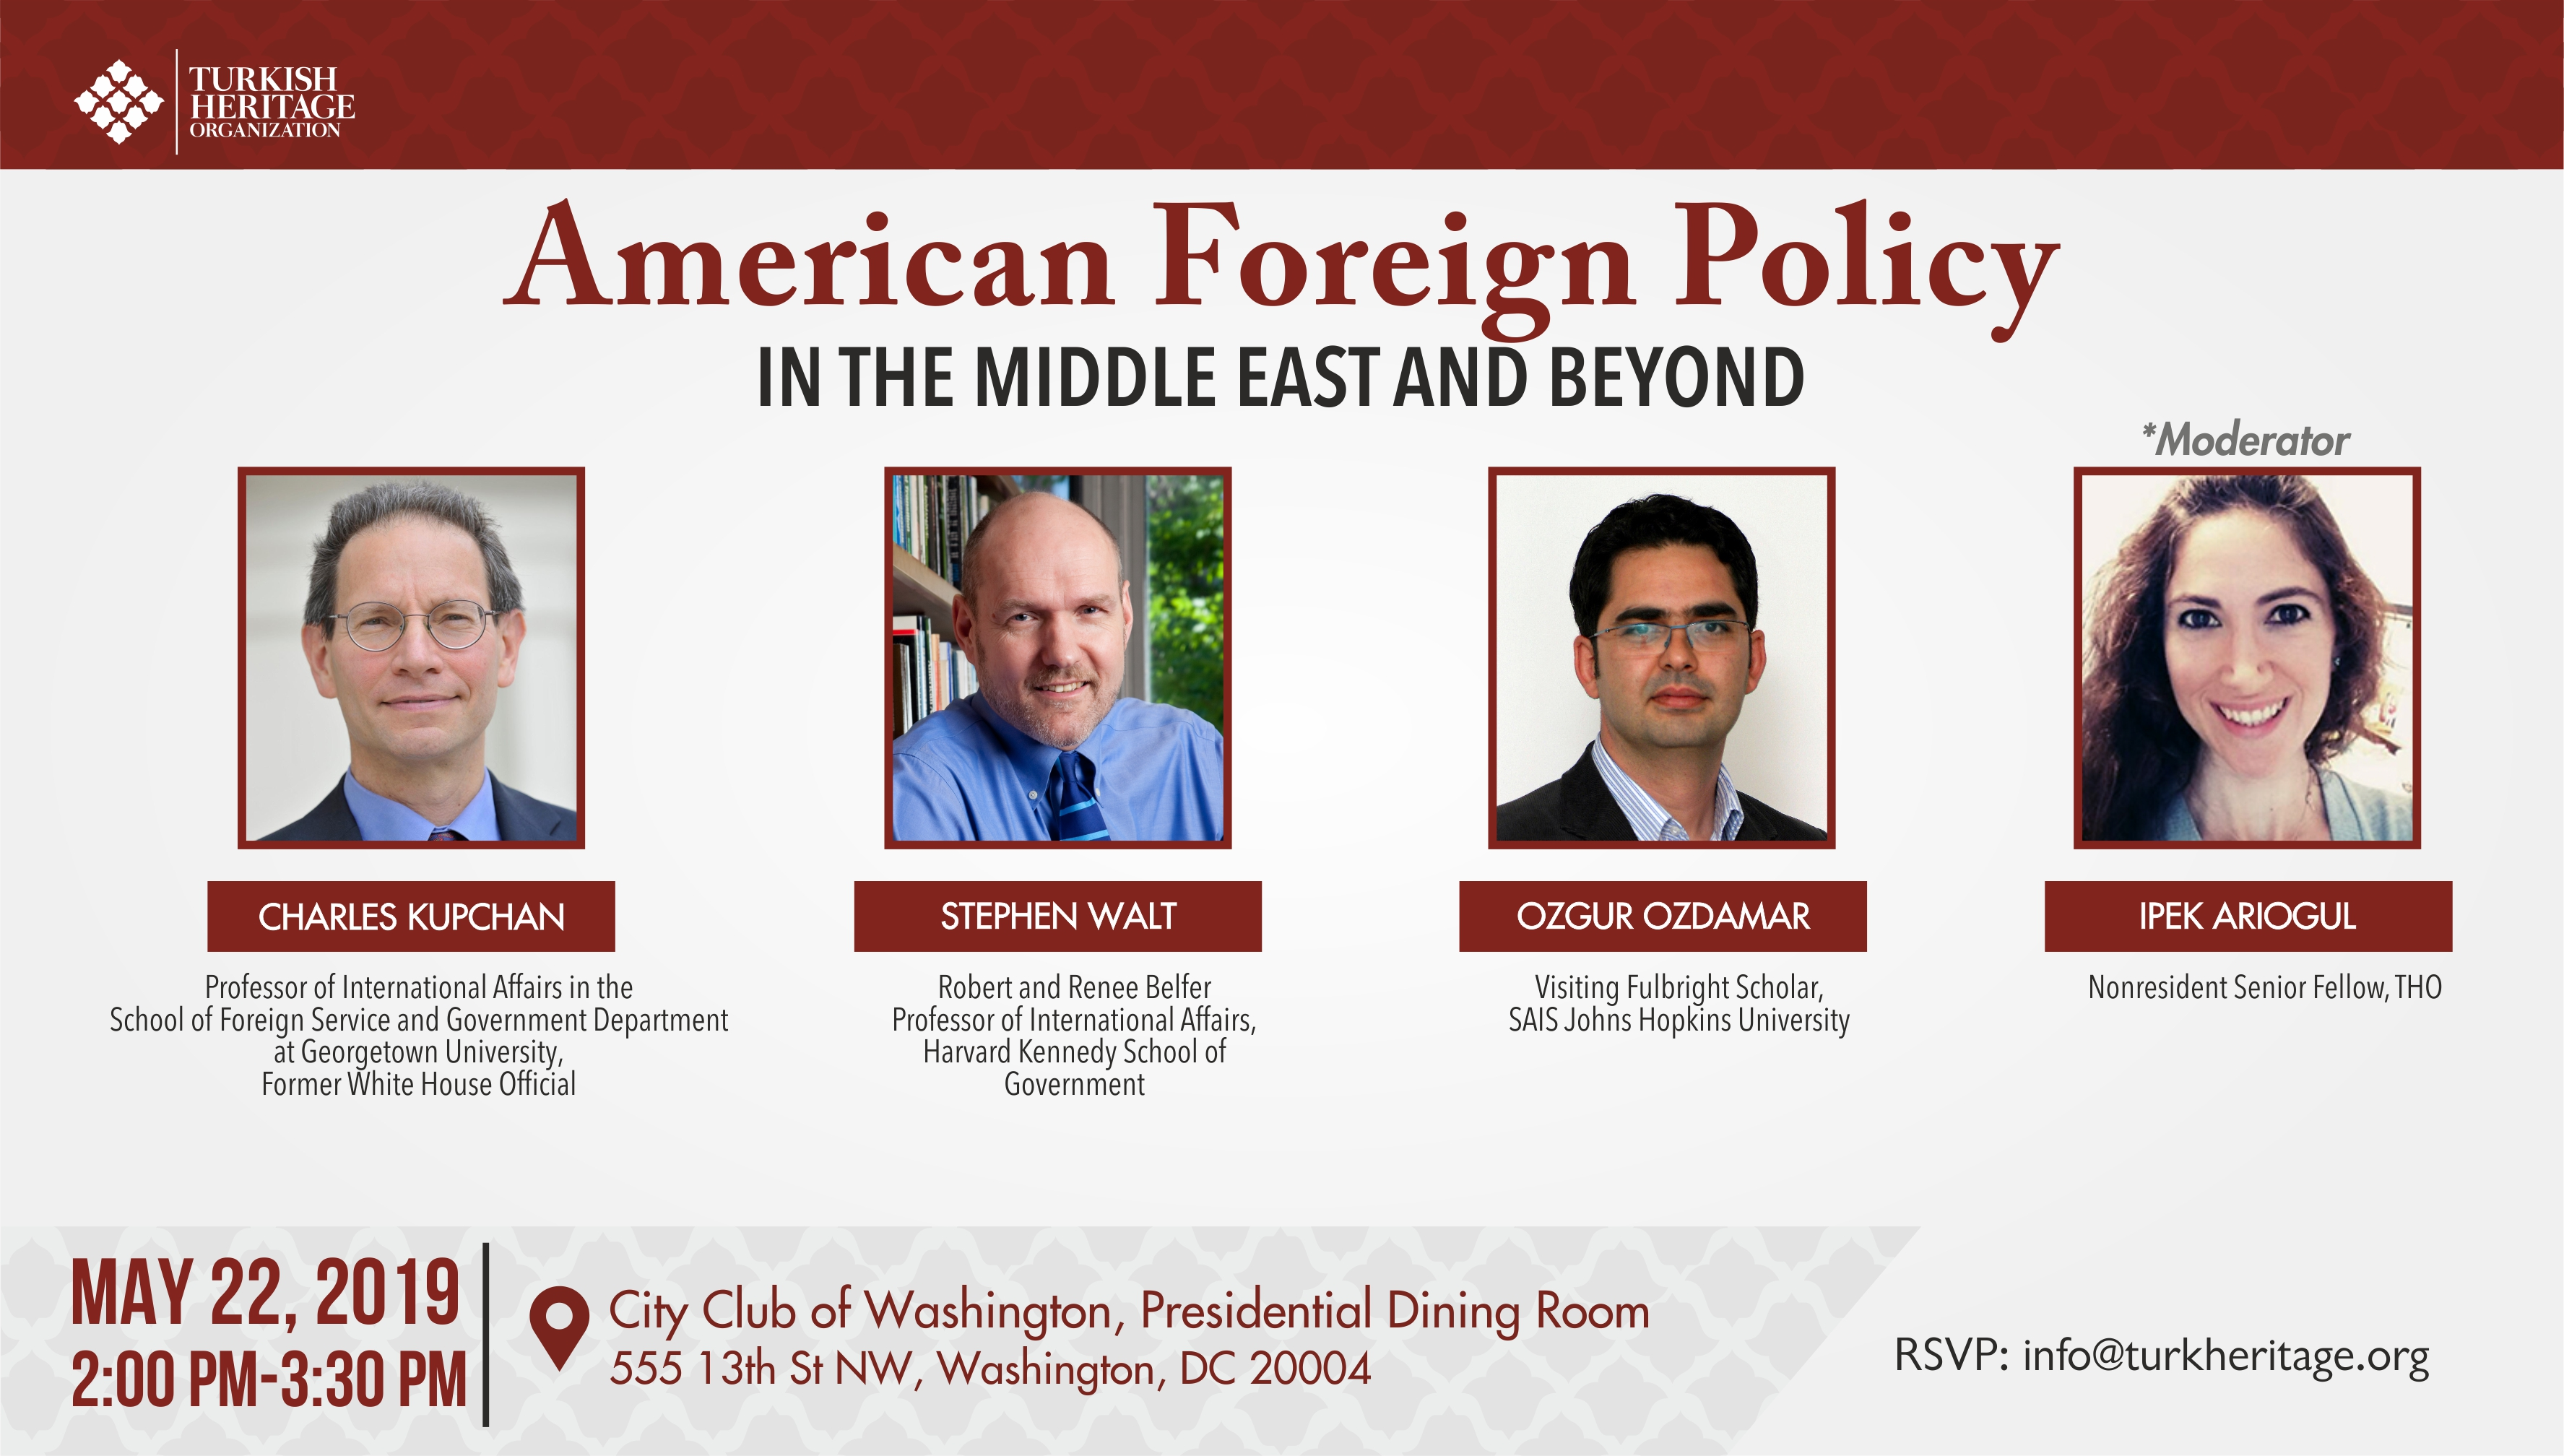 American Foreign Policy in the Middle East and Beyond